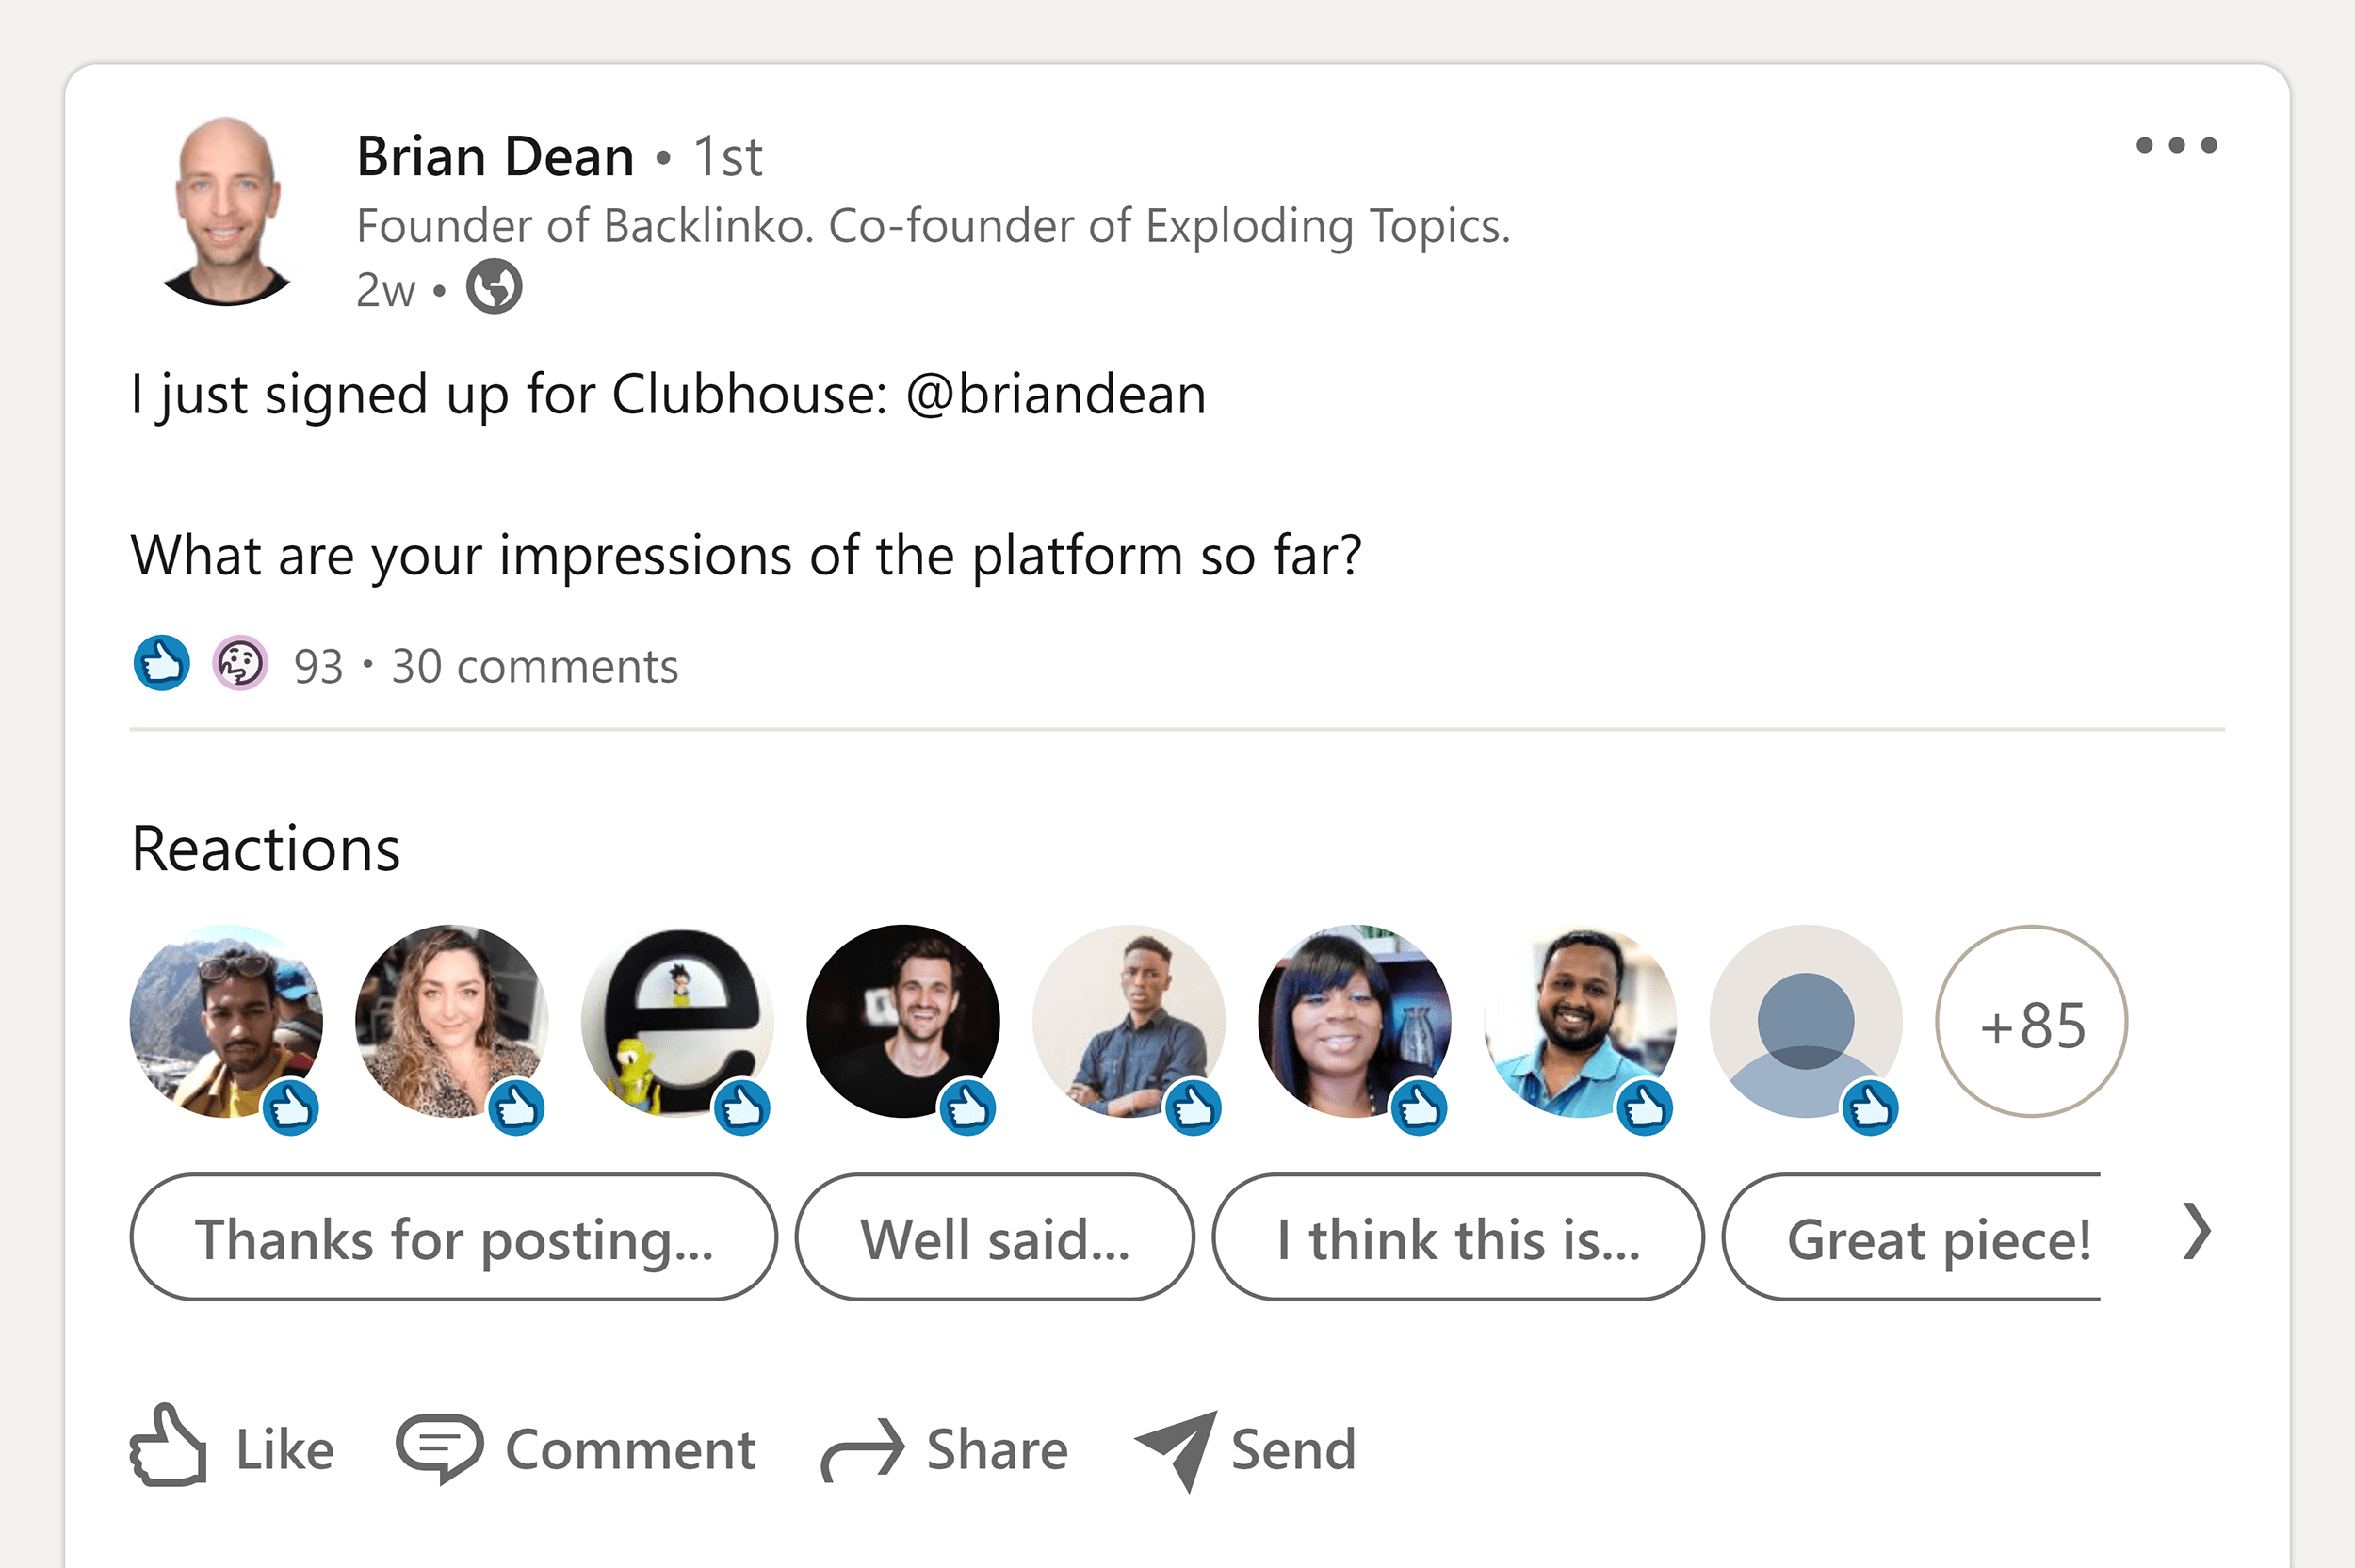 Brian's LinkedIn Clubhouse post